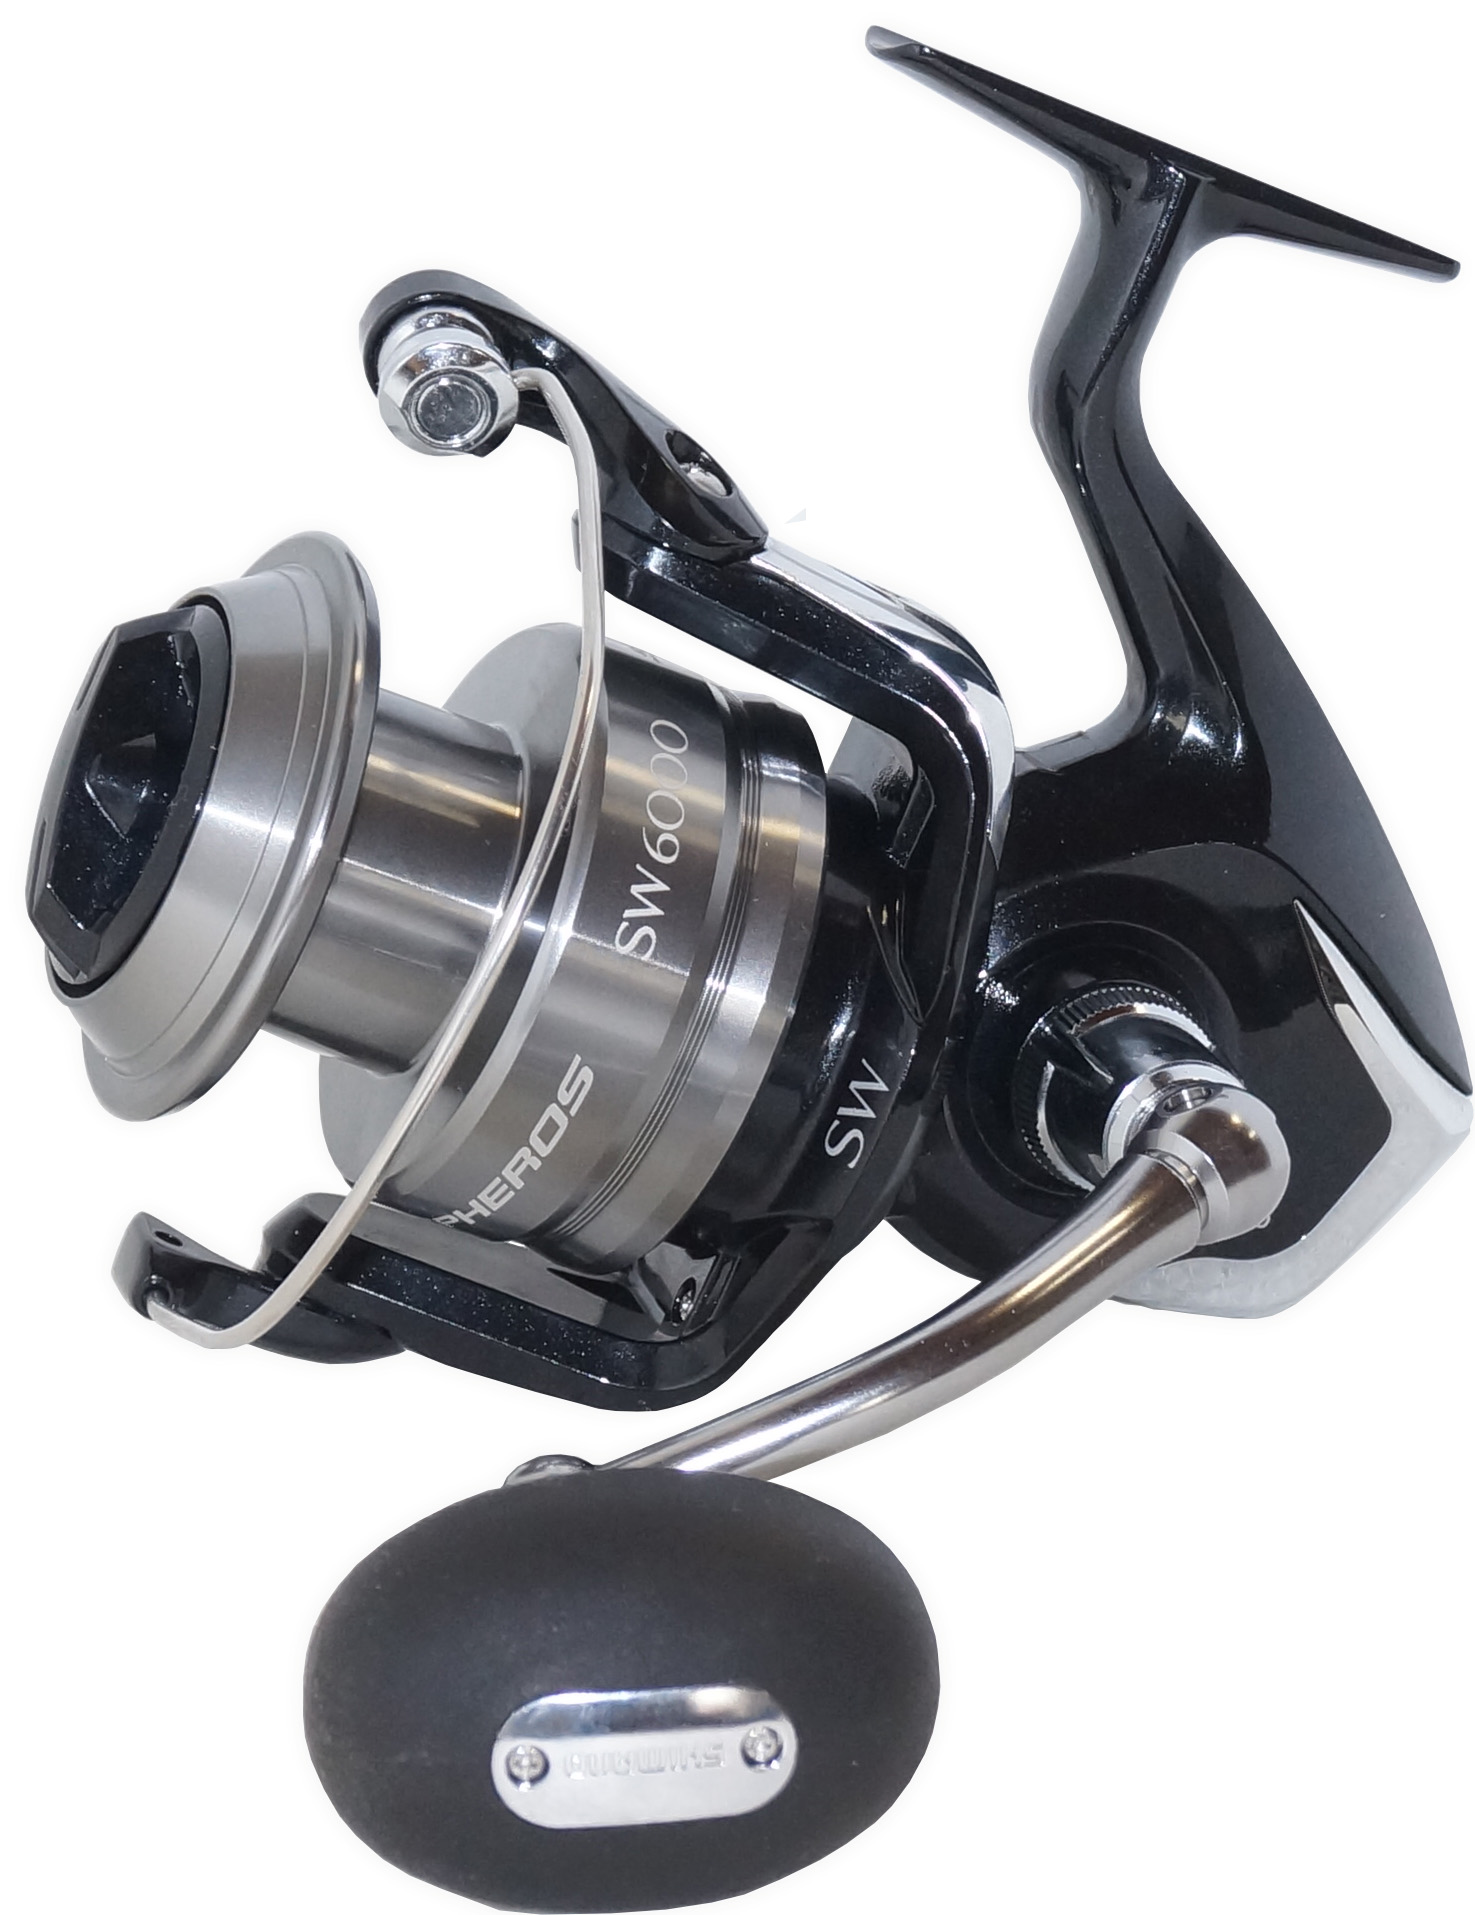 shimano spheros 6000 sw heavy duty saltwater reel | ebay, Fishing Reels